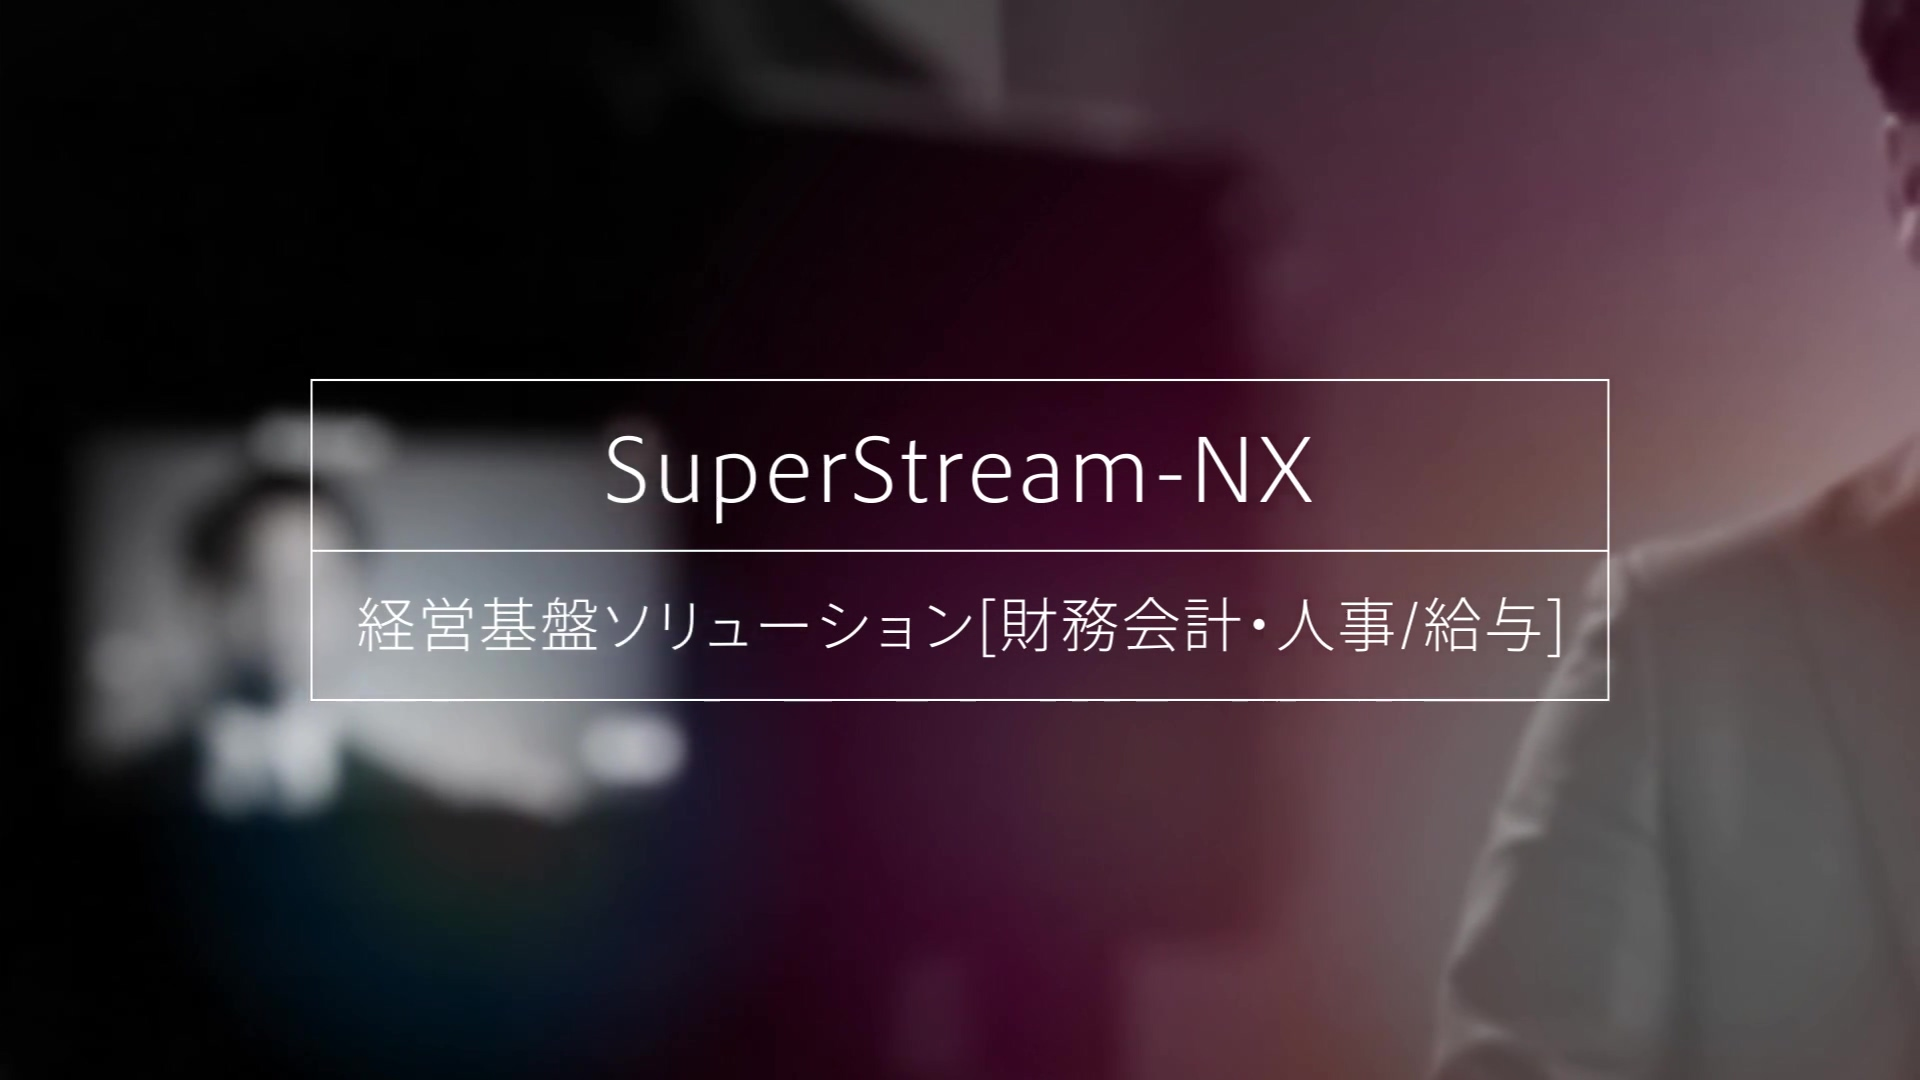 Whats SuperStream?